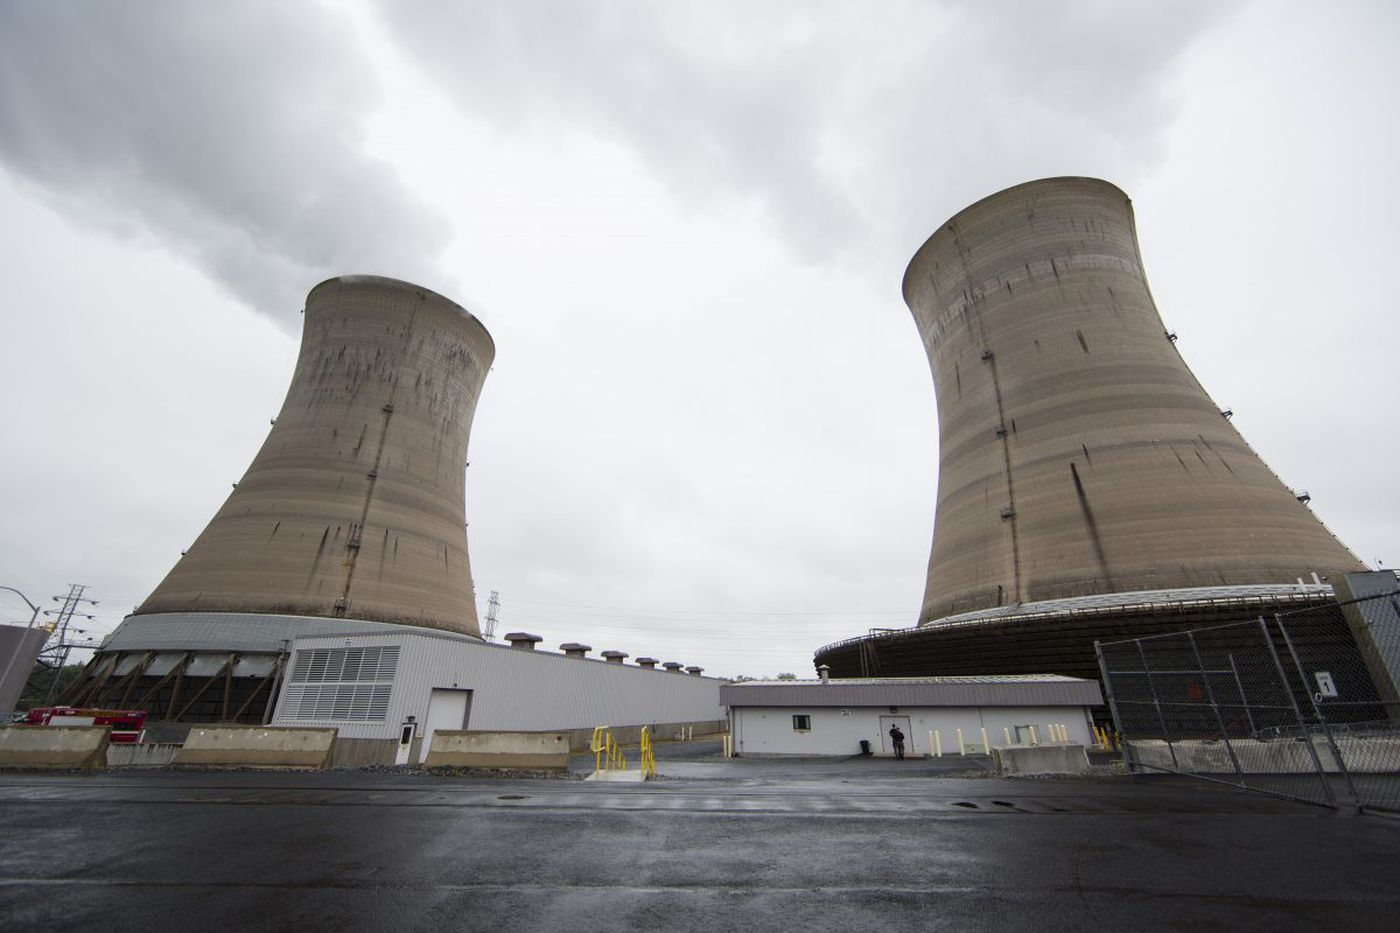 Pennsylvania residents shouldn't bear cost of propping up nuclear industry